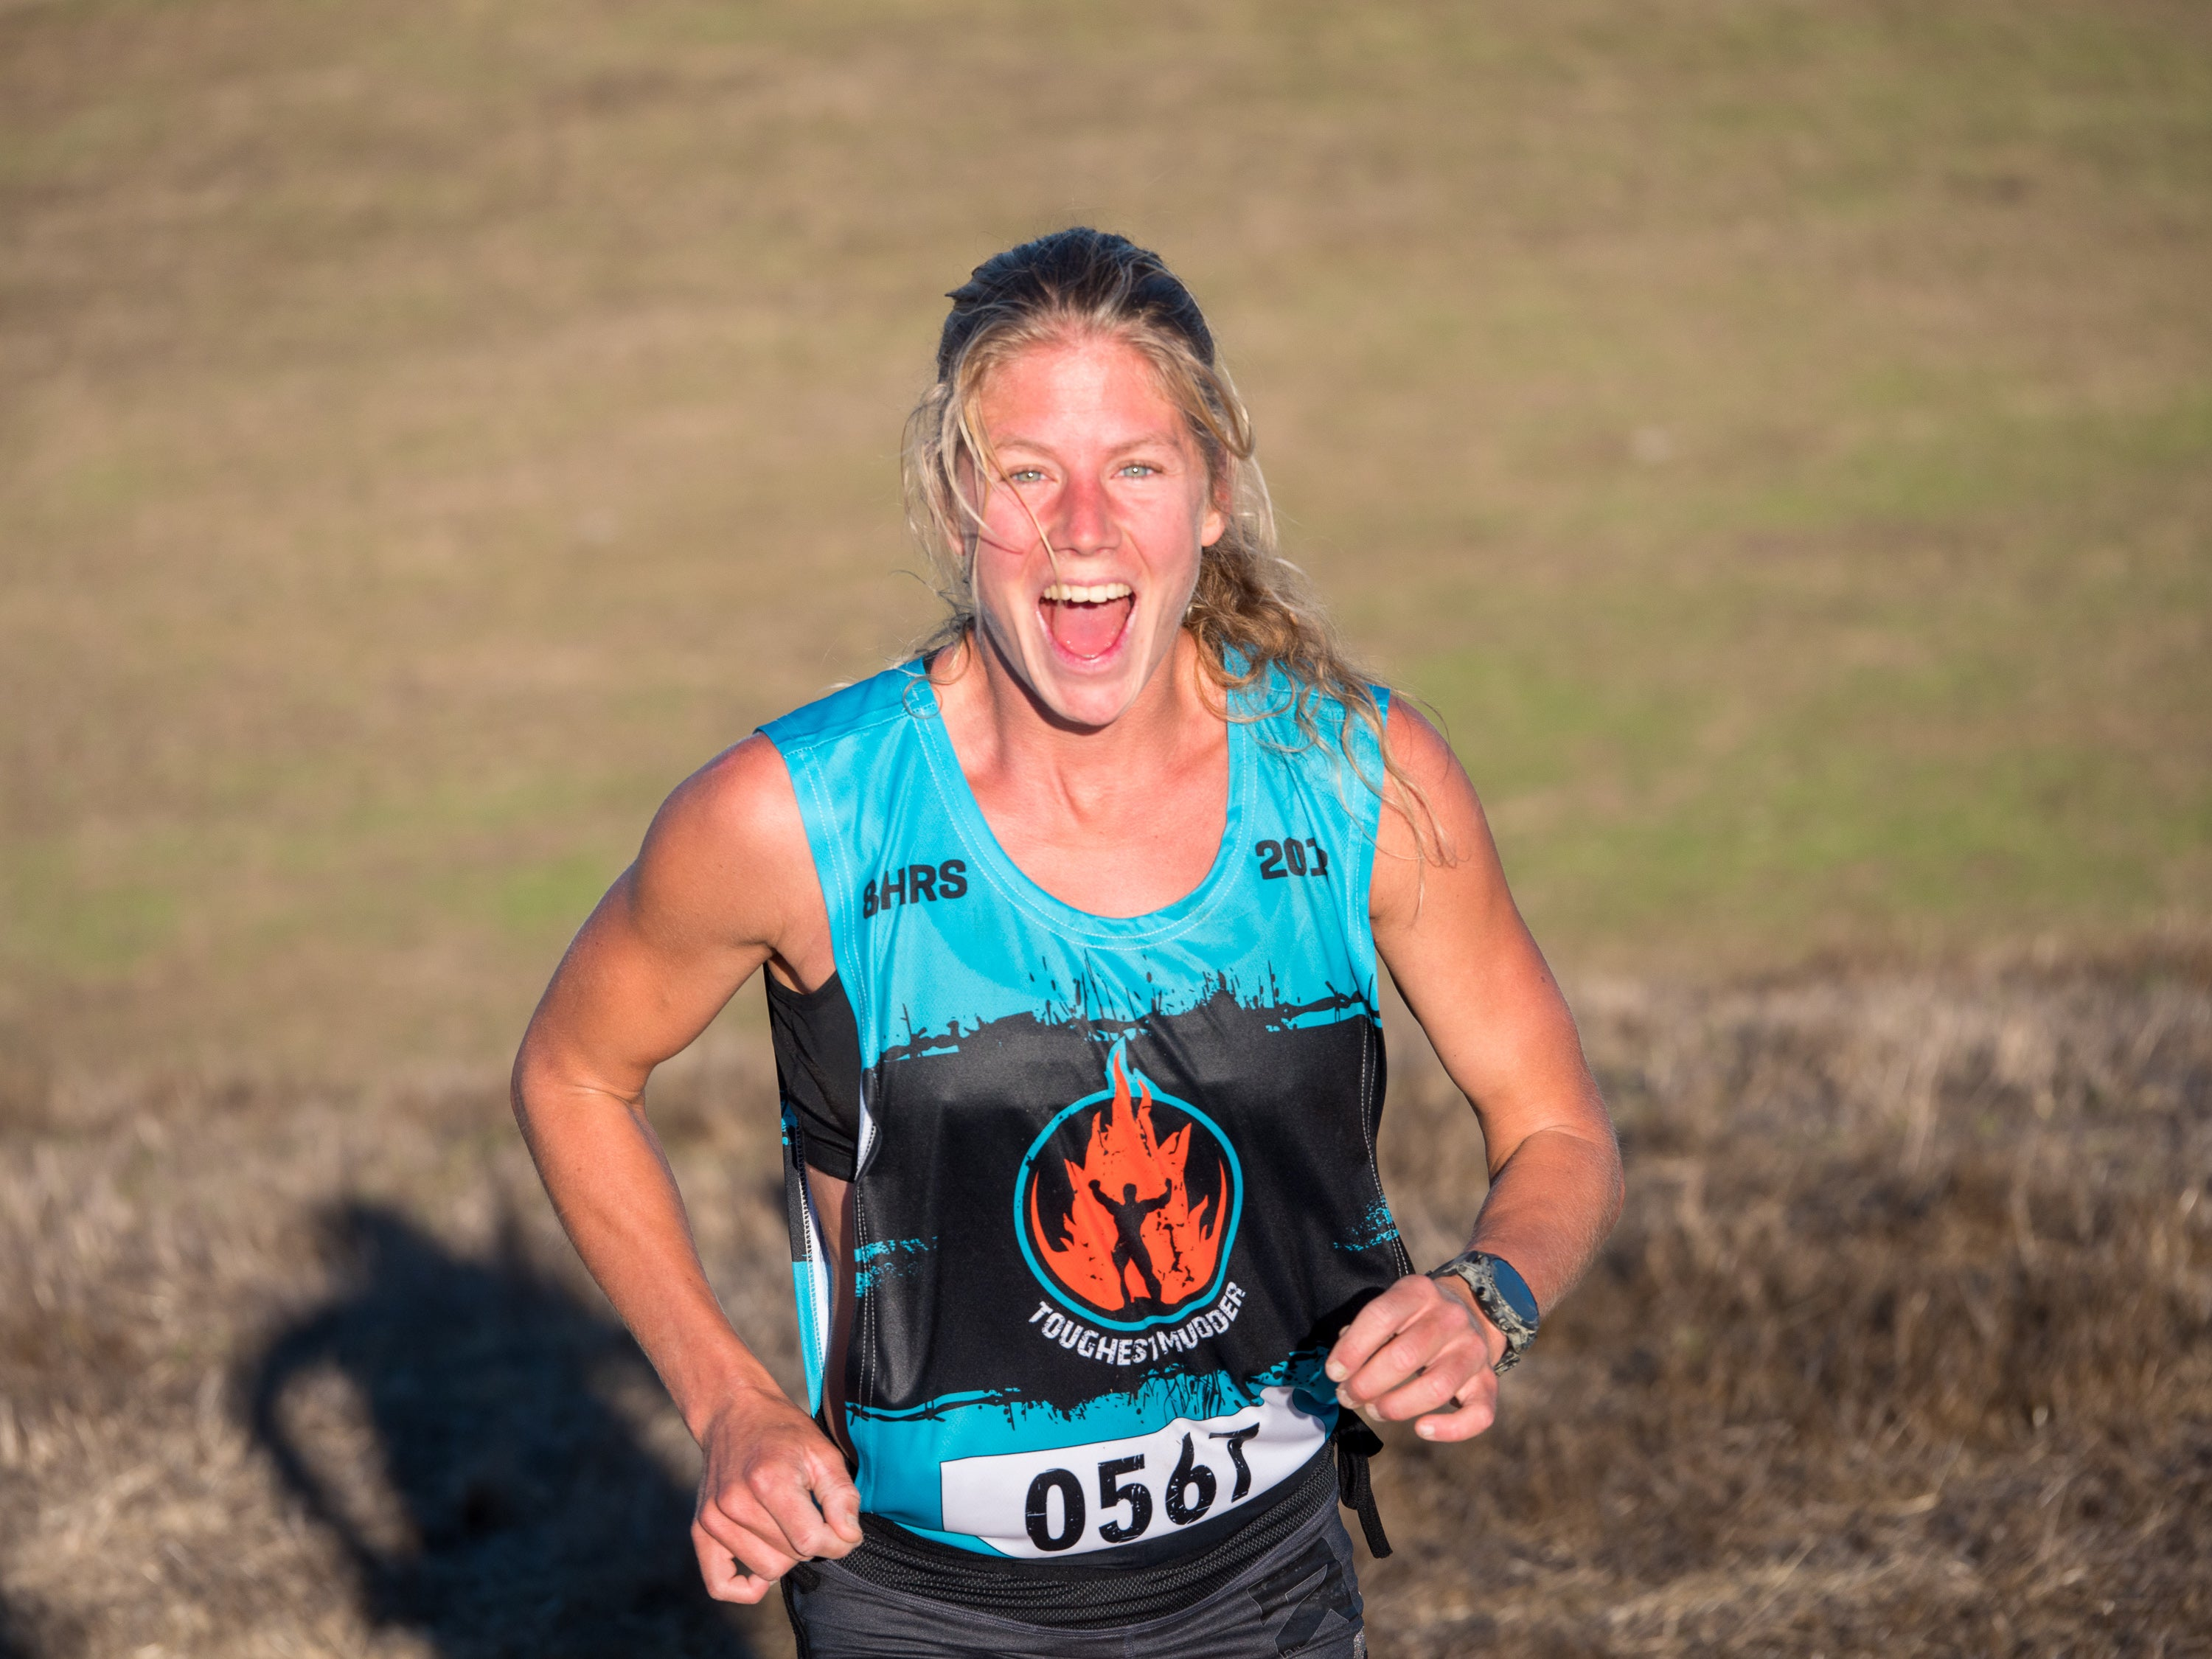 Rea Kolbl - World's Toughest Mudder